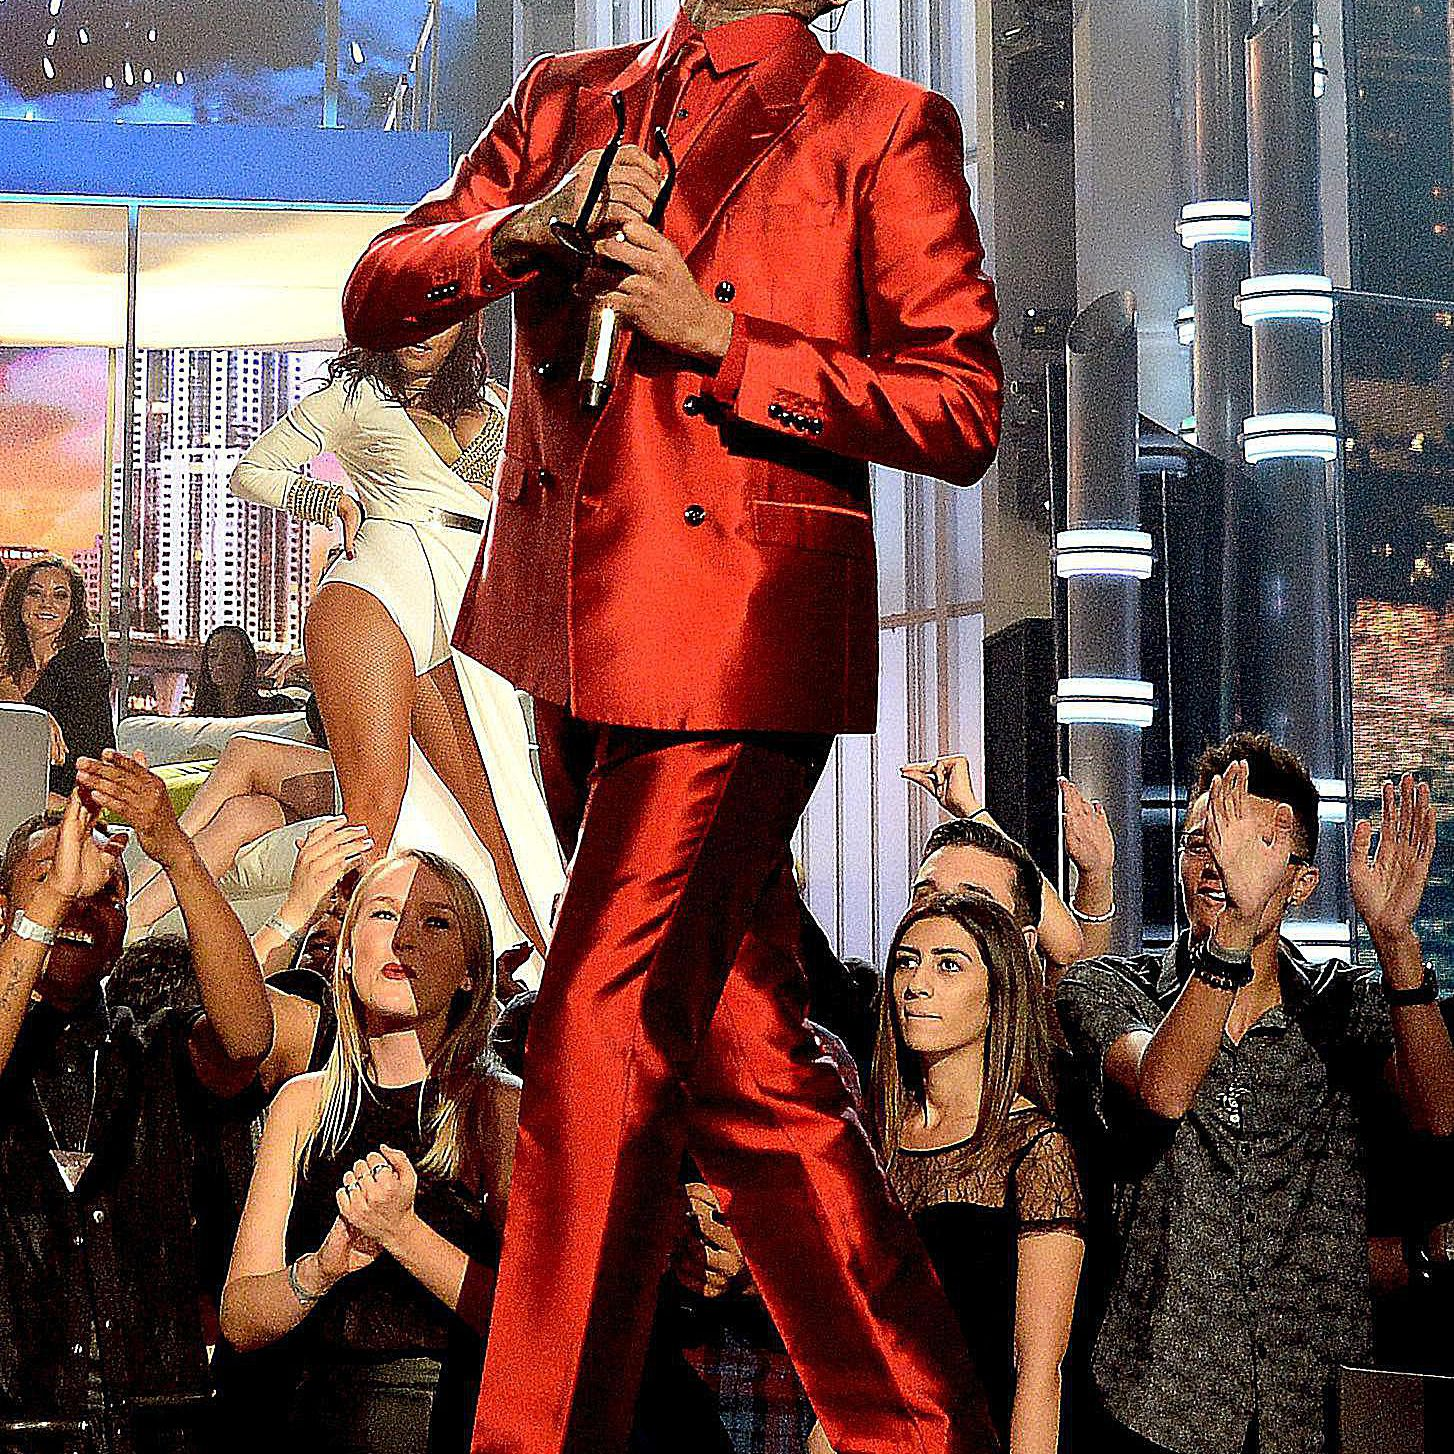 Chris Brown wearing a red suit